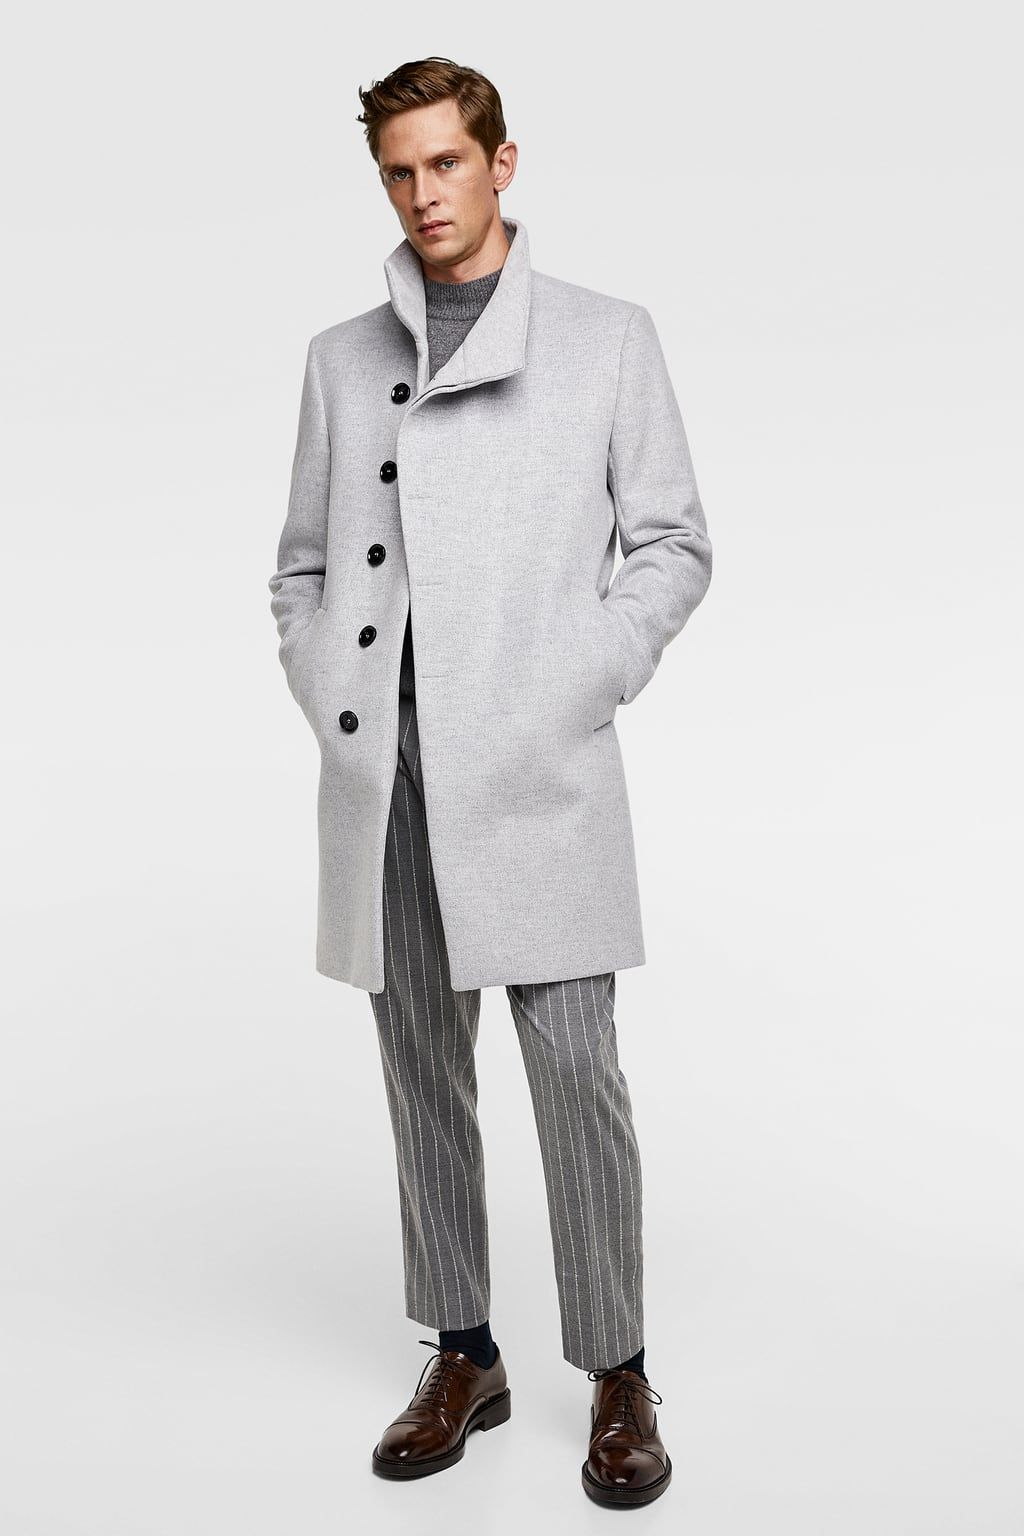 b88744f6d0 Asymmetrical collar coat in 2019 | Men's Fashion | Coat, Check coat ...